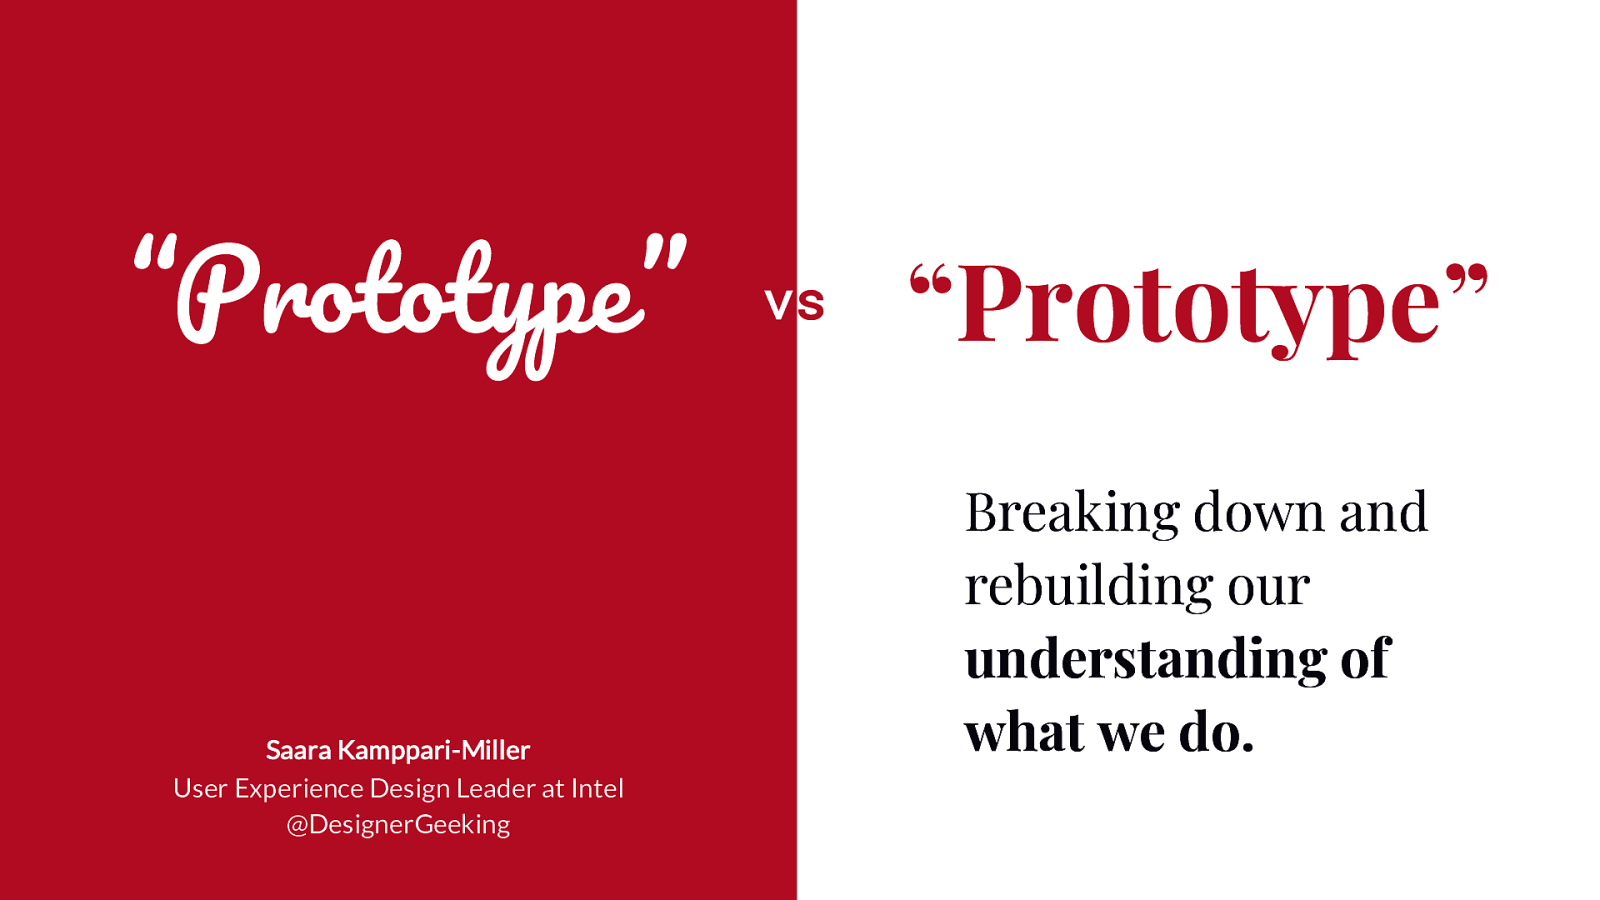 """Prototype"" vs ""Prototype"" - Breaking Down and Rebuilding Our Understanding of What We Do"